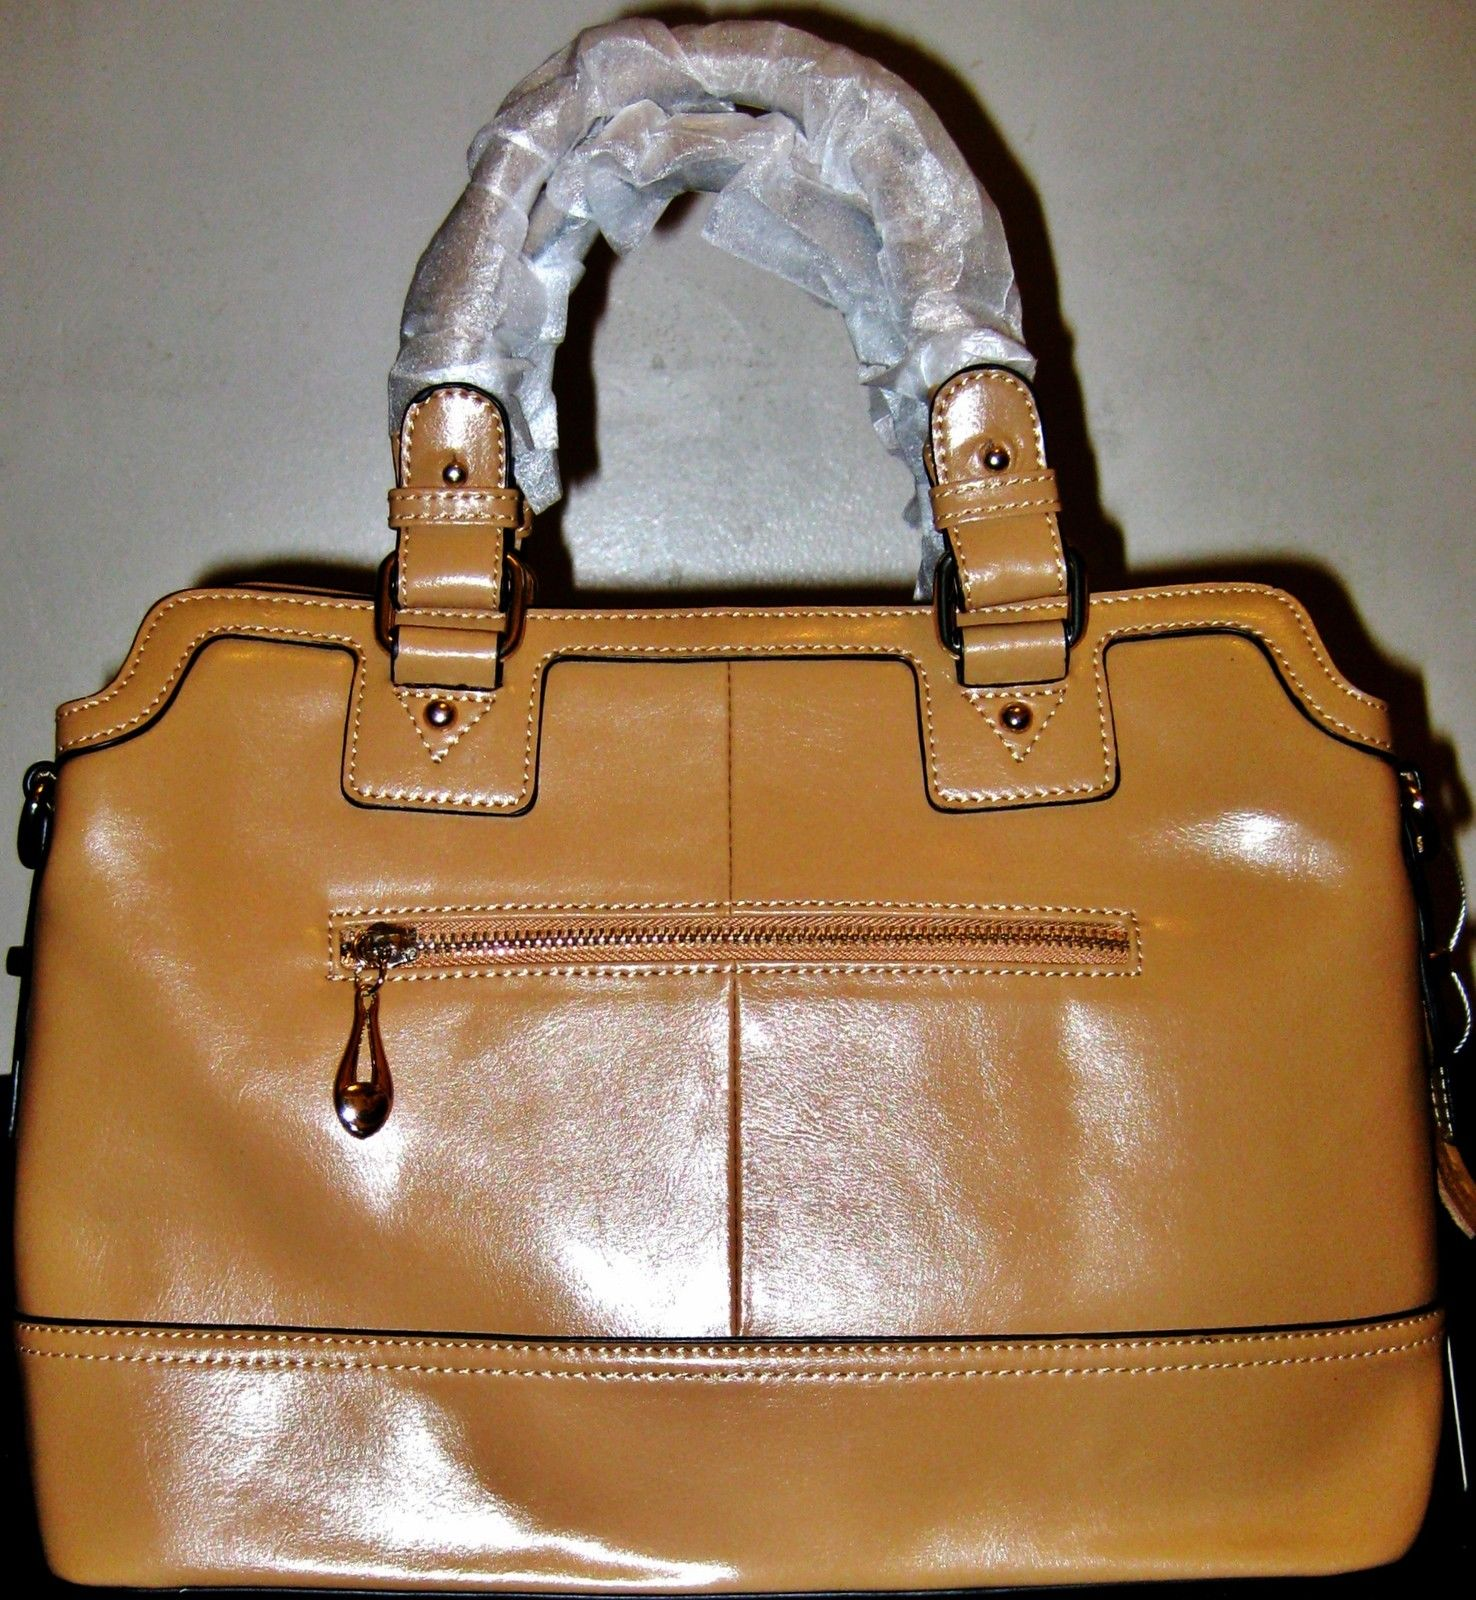 100% ITALY COWHIDE CAMEL LEATHER HANDBAG